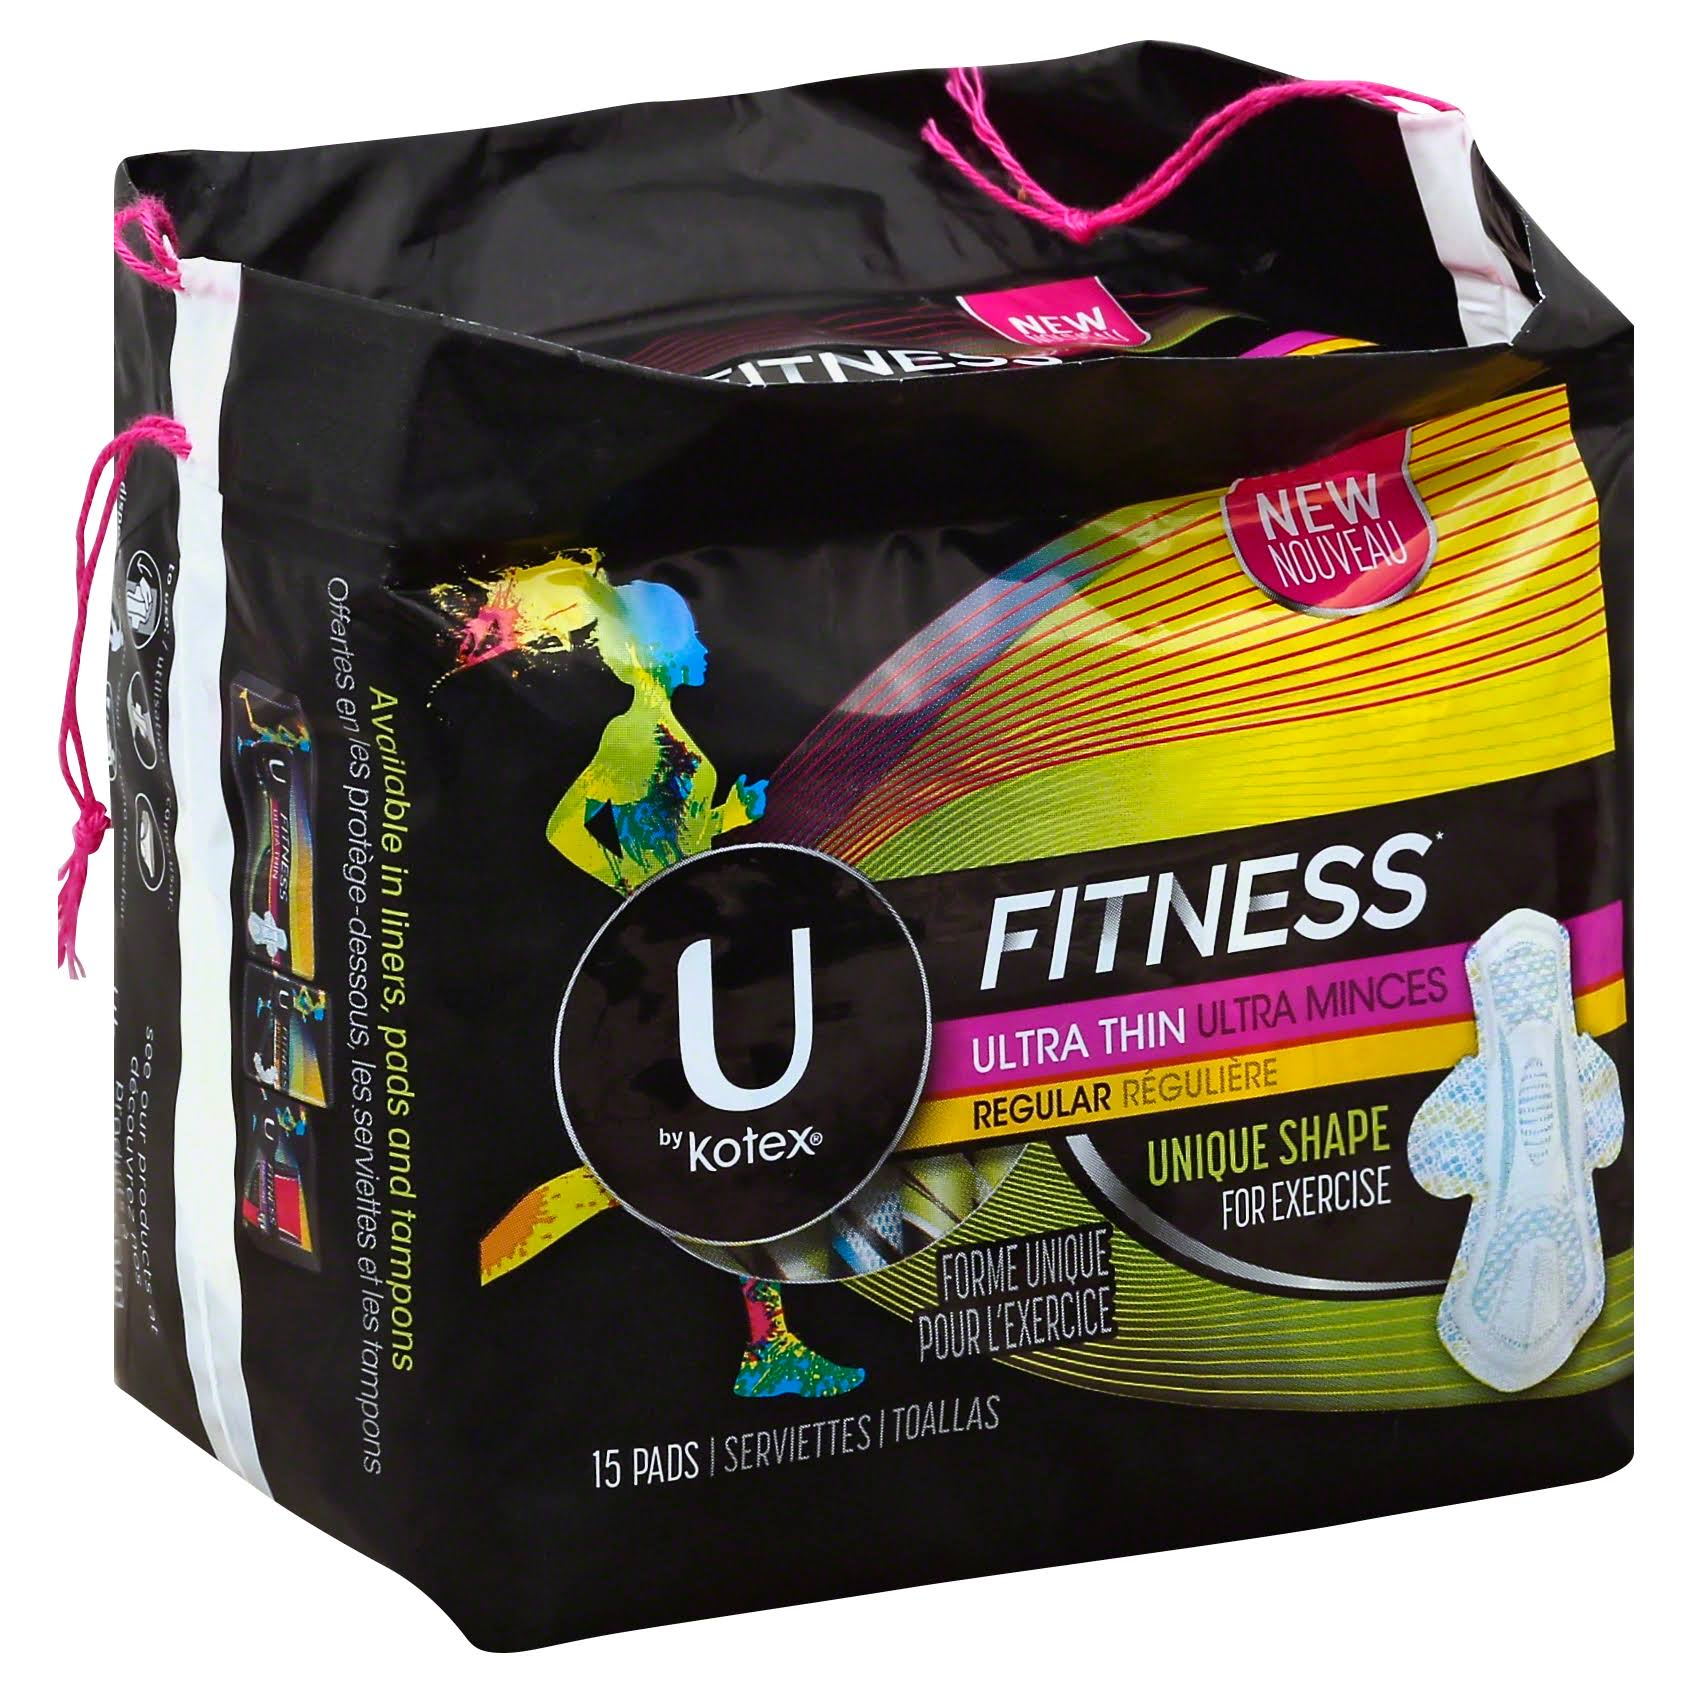 U by Kotex Fitness Ultra Thin Regular Pads - 15 Pack